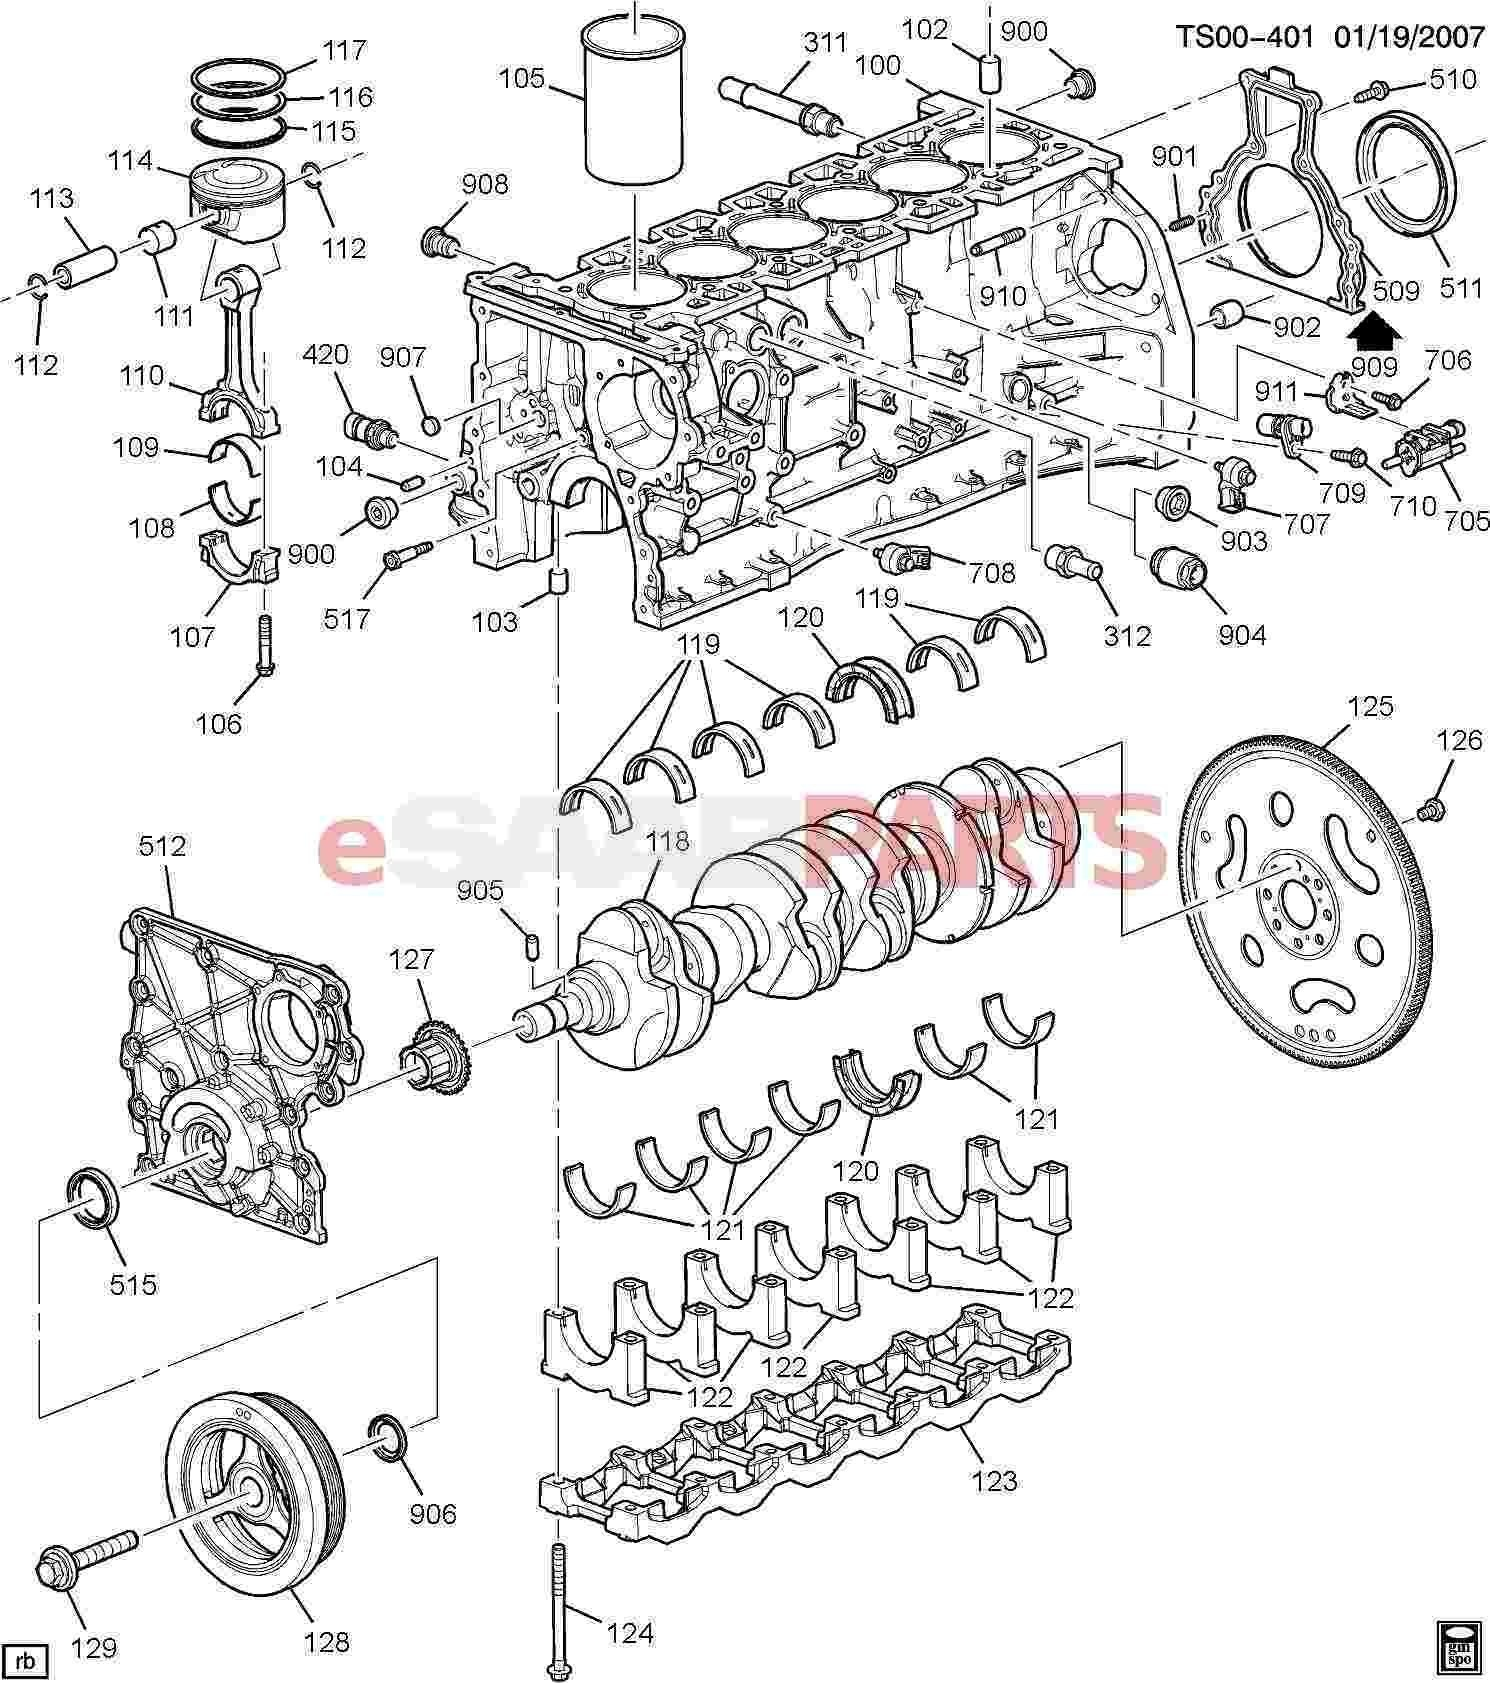 2001 Chevy Blazer Engine Diagram 2001 Blazer Engine Diagram Of 2001 Chevy Blazer Engine Diagram 1997 Chevy Blazer Fuel Gauge issue Fuel Gauge Buffer Module